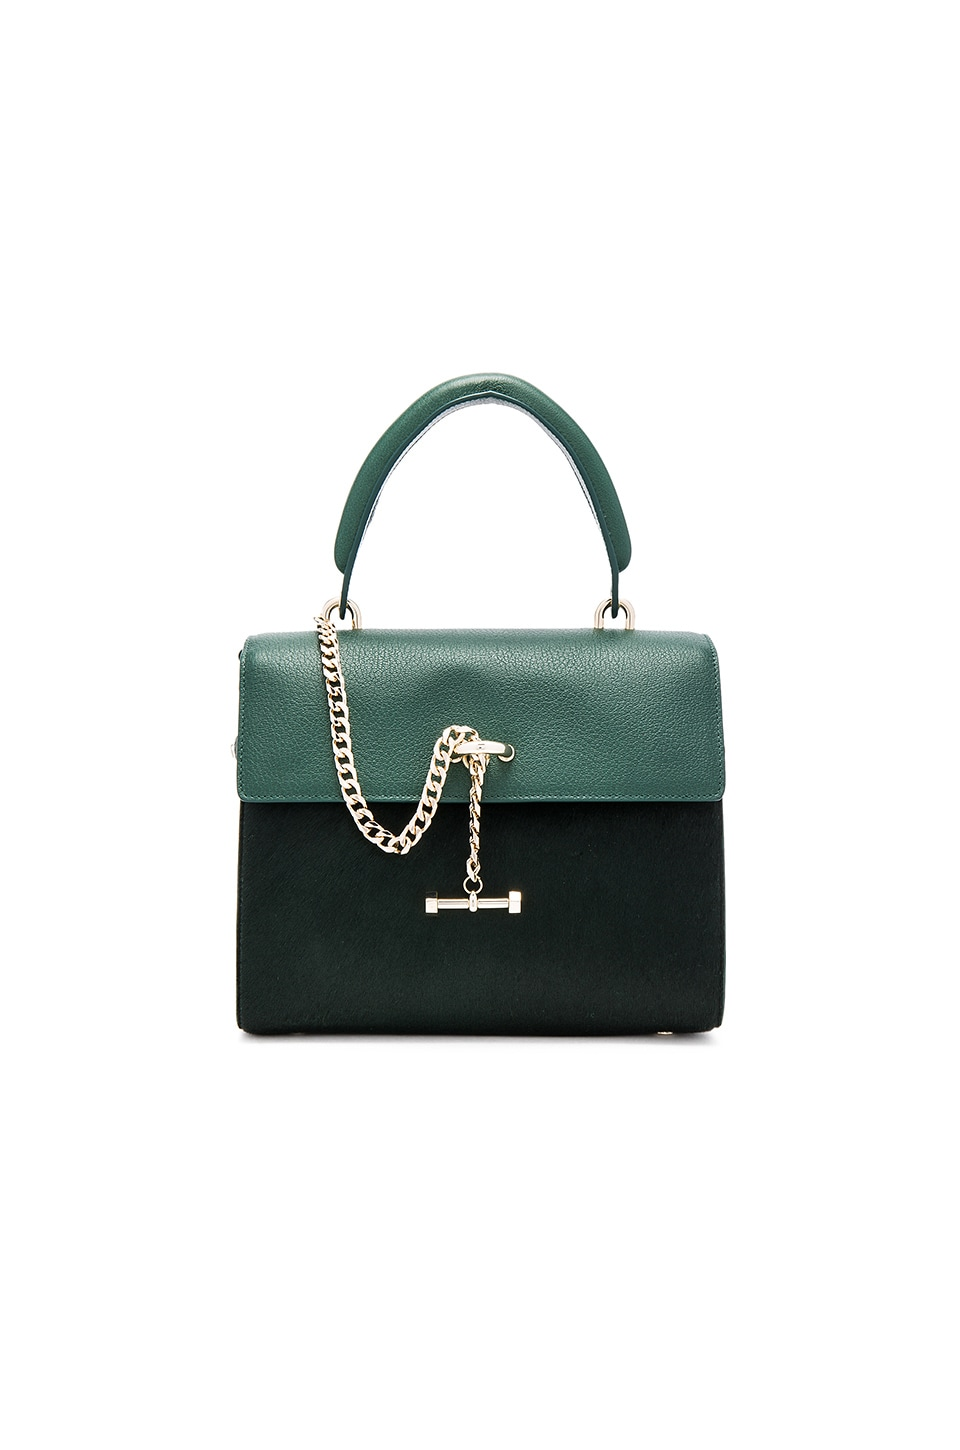 Luana Italy Paley Mini Pony Hair Satchel in Jungle